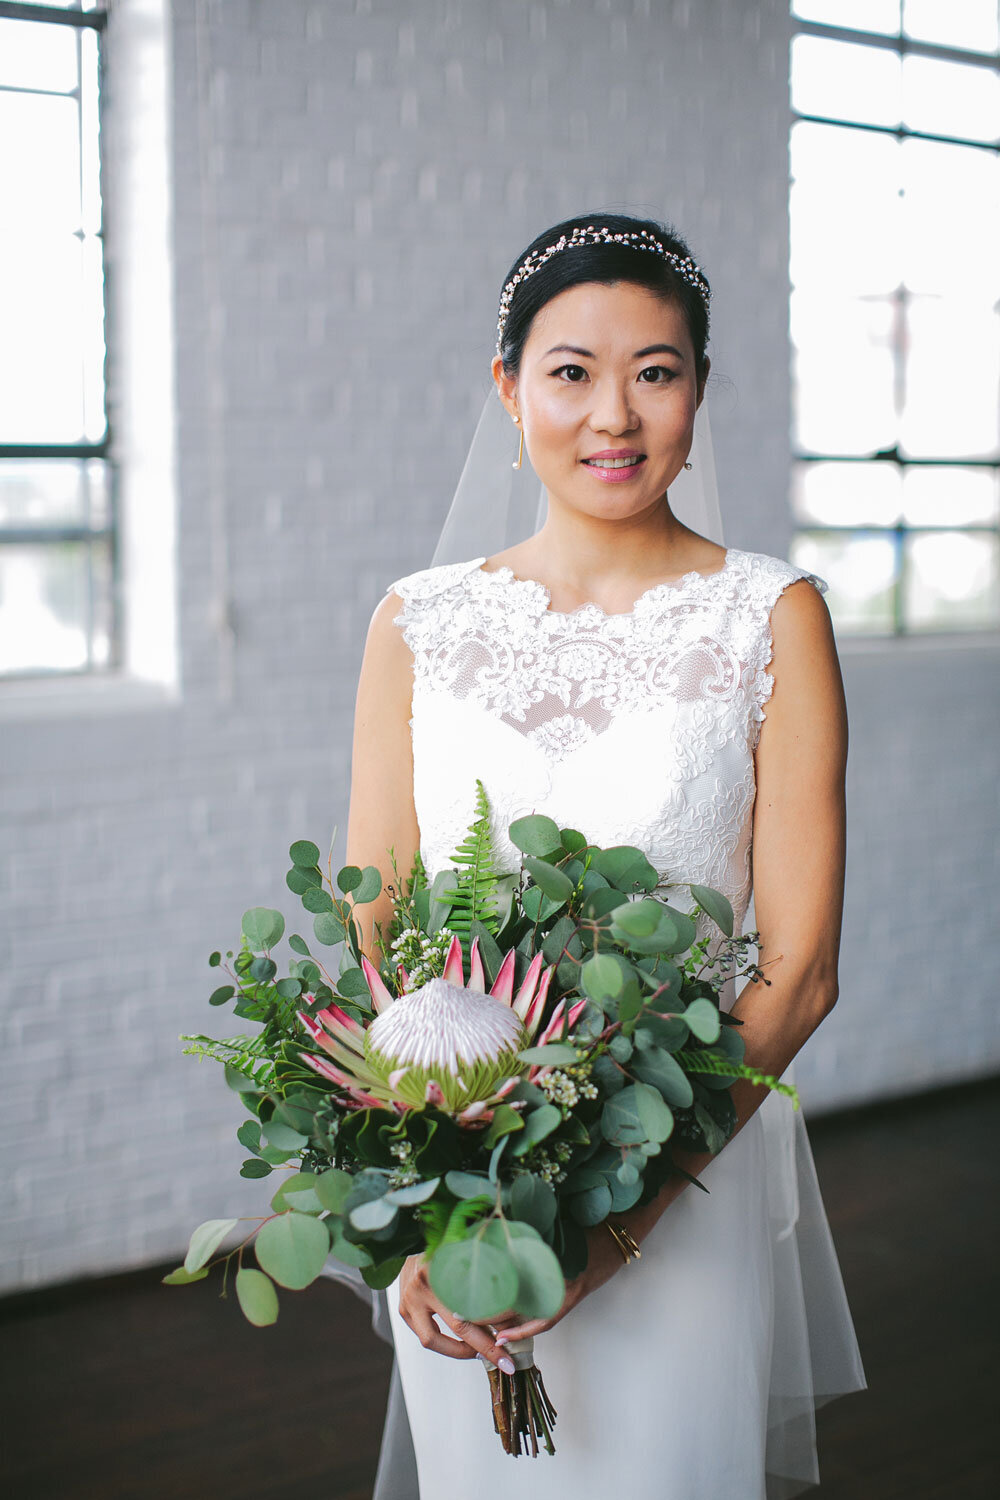 Ambient Plus Studio Wedding Atlanta Warehouse Wedding Asian Bride Korean Bride Natural wedding makeup